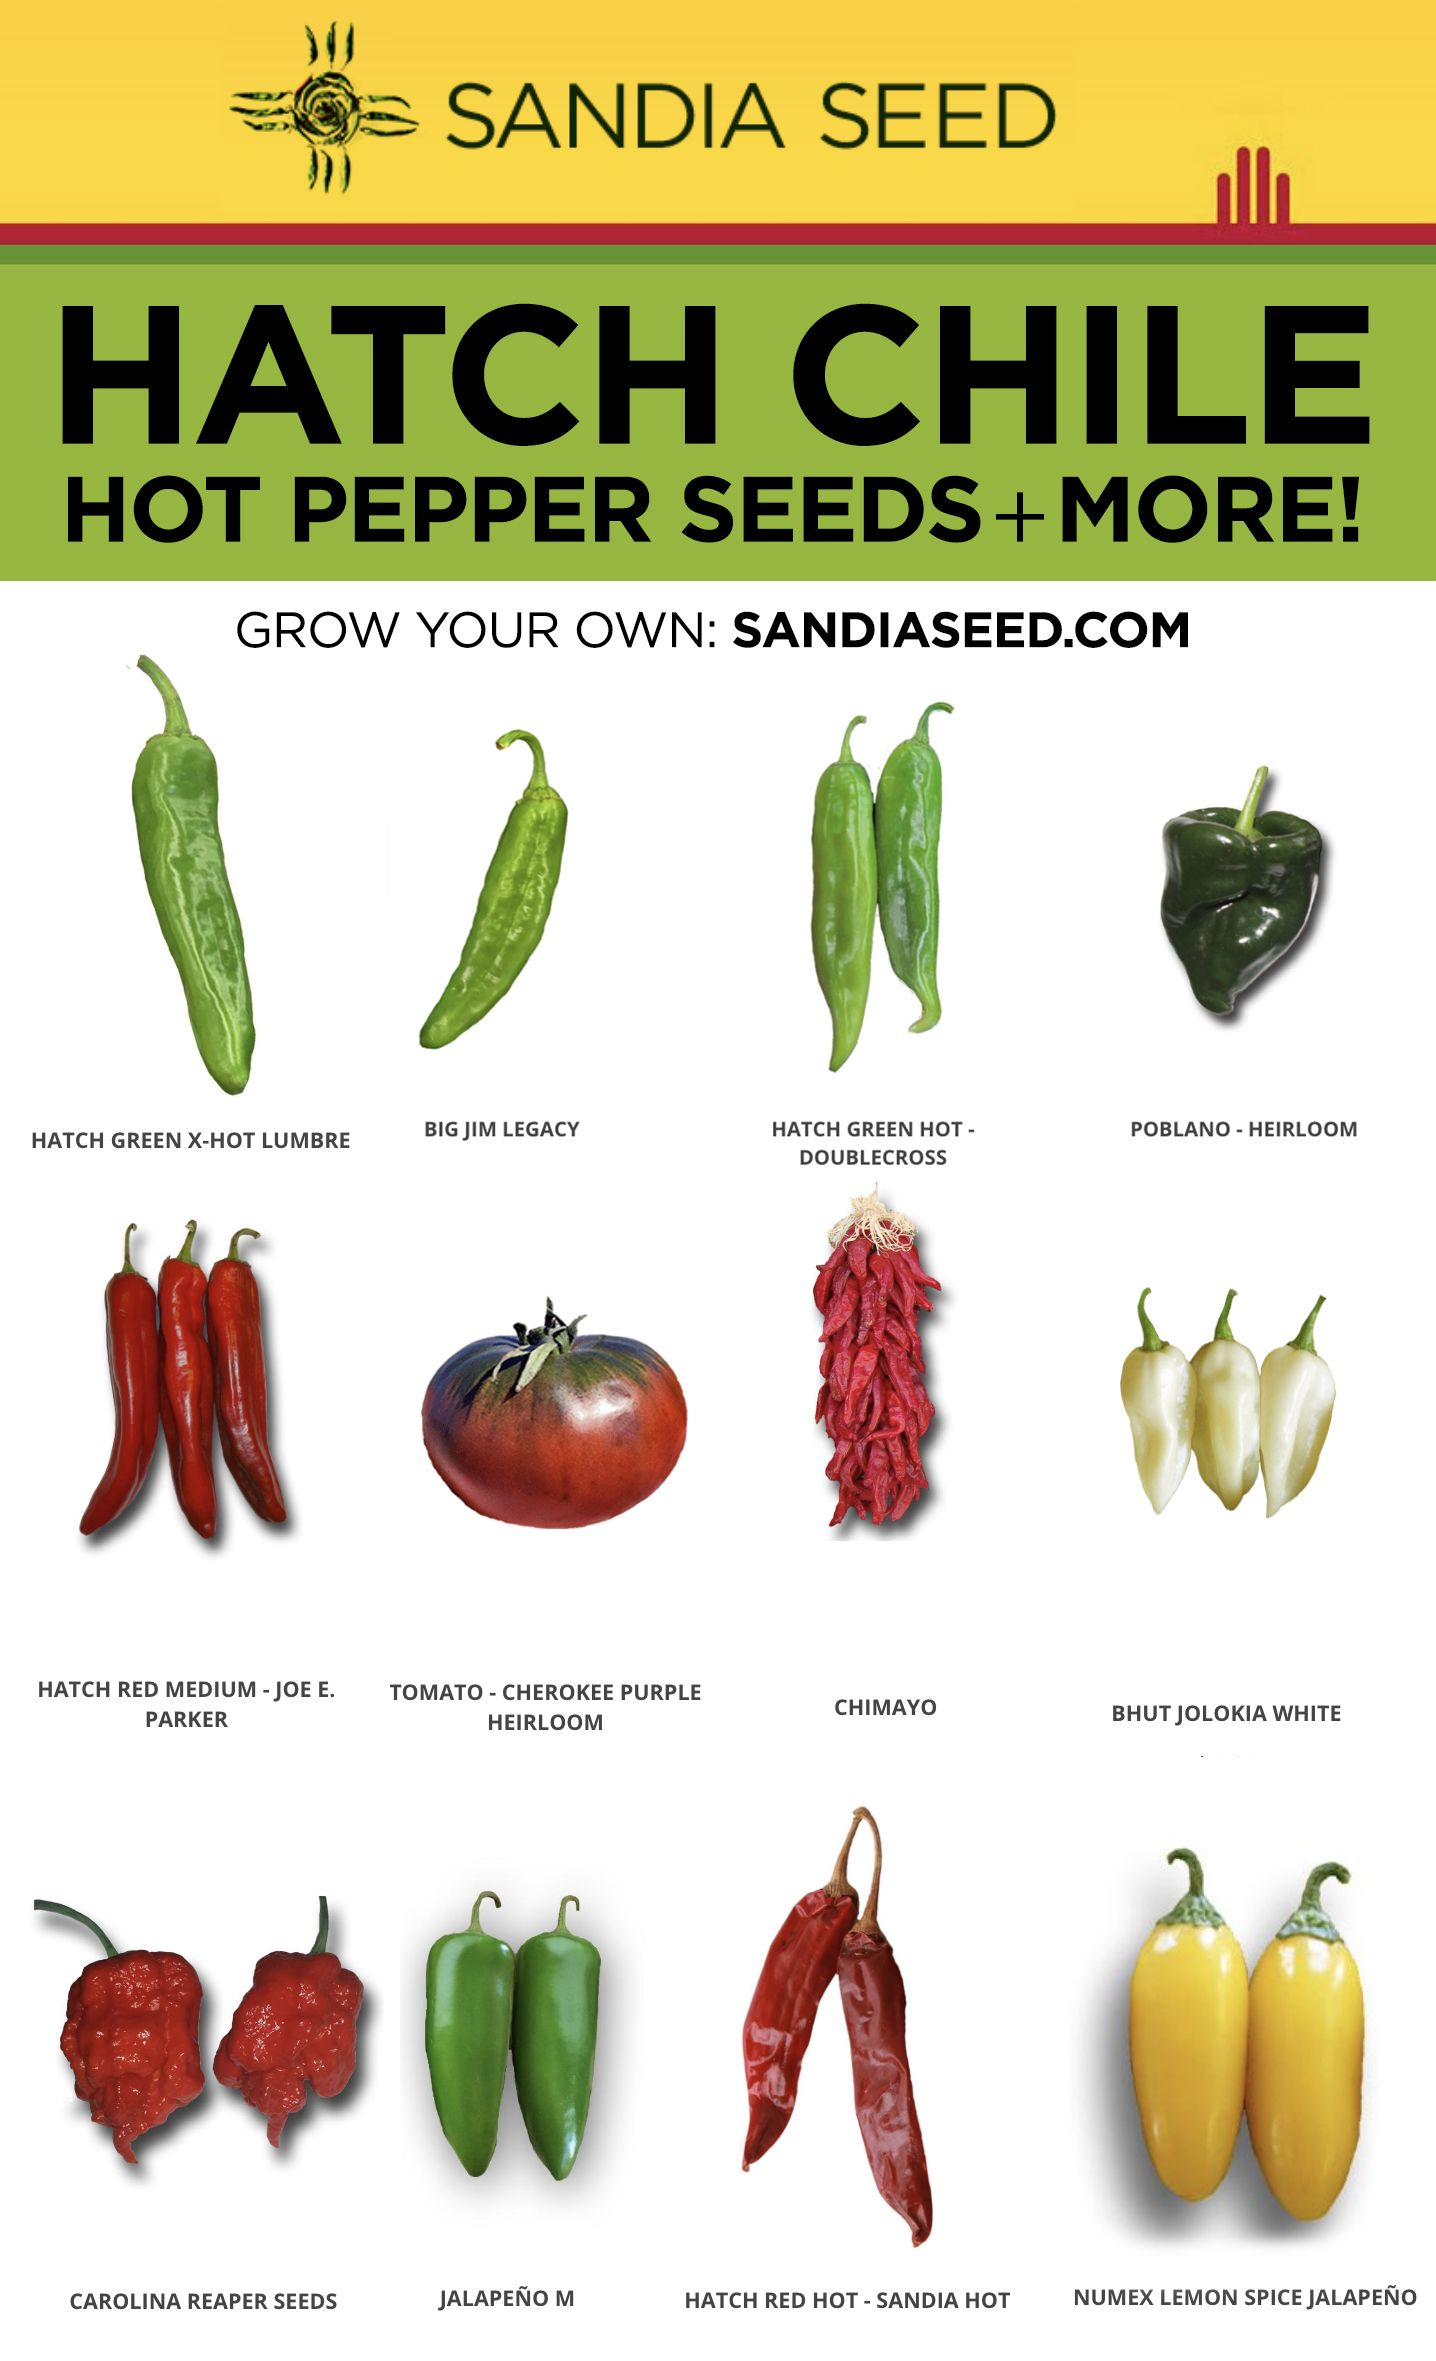 We Peppers Check Out Our Beloved Collection Of Super Hot Peppers Hatch Chile Seeds And Heirloom Toma Stuffed Peppers Hot Pepper Seeds Stuffed Hot Peppers